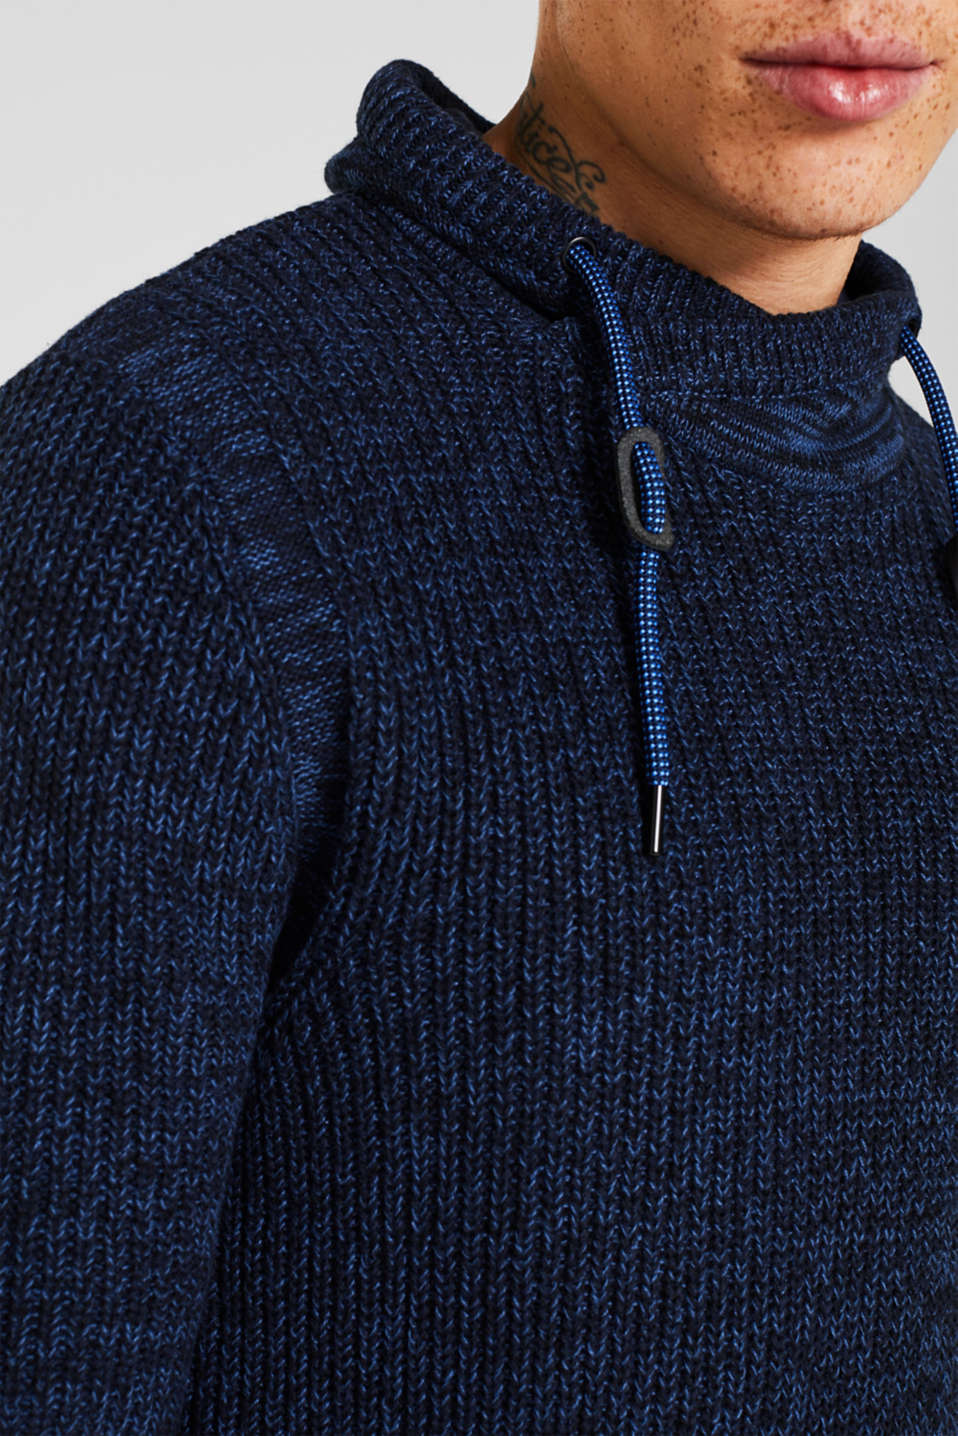 Knitted jumper with a drawstring collar, NAVY, detail image number 2